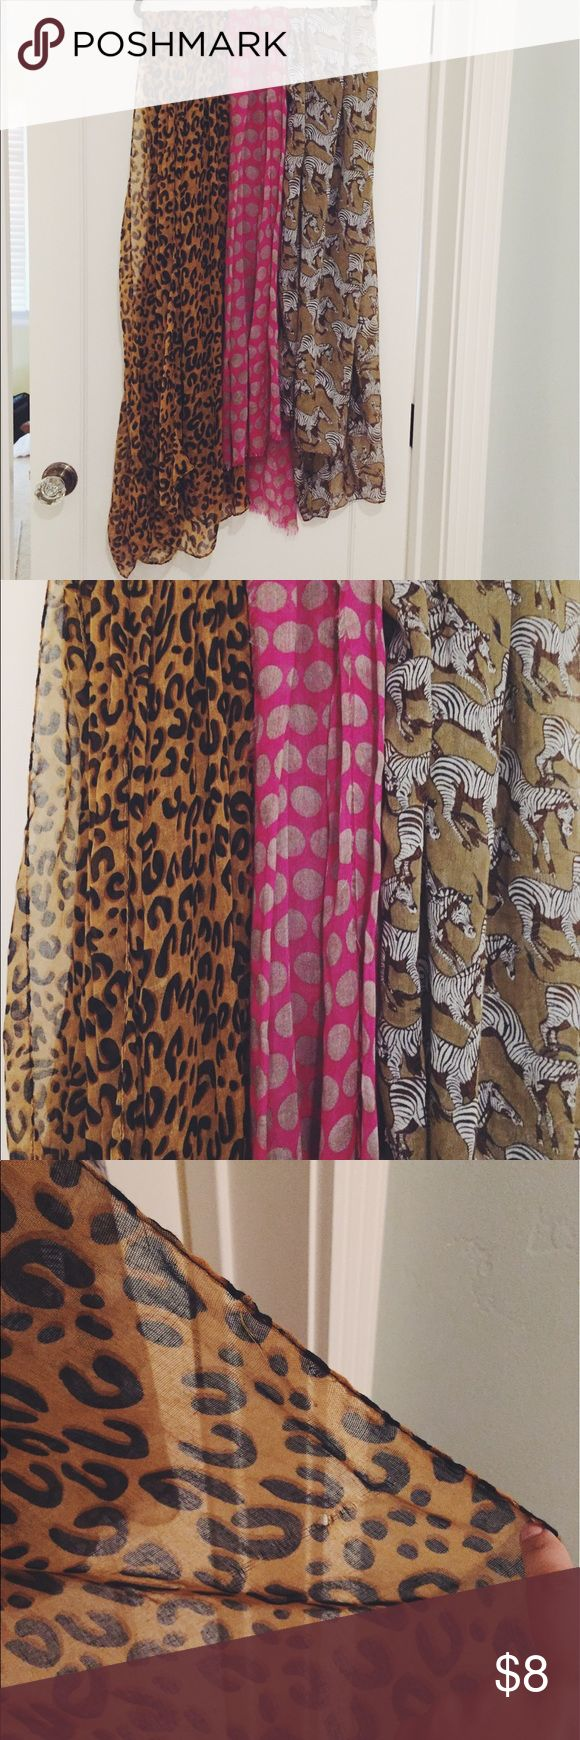 Chiffon print scarves Pretty and light scarves. Perfect for spring and fall! Price is for one scarf. Please comment when you order to specify which one you would like! Cheetah (L), dots (middle), or zebras (R). Please note cheetah scarf has a small hole. Offers welcome! Accessories Scarves & Wraps